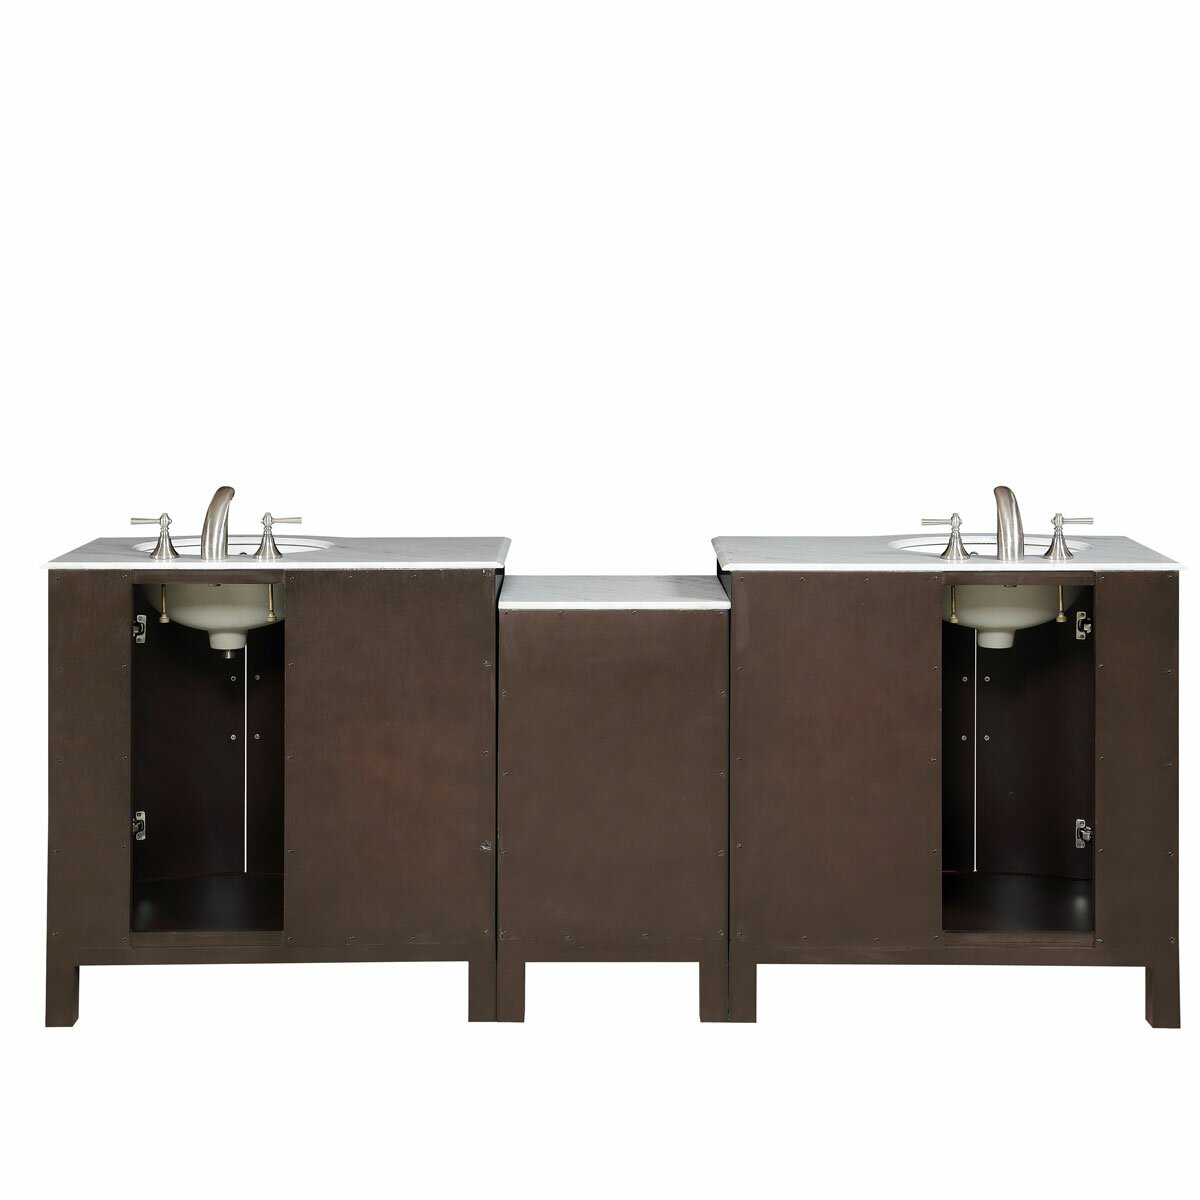 double lavatory sink cabinet bathroom vanity set reviews wayfair